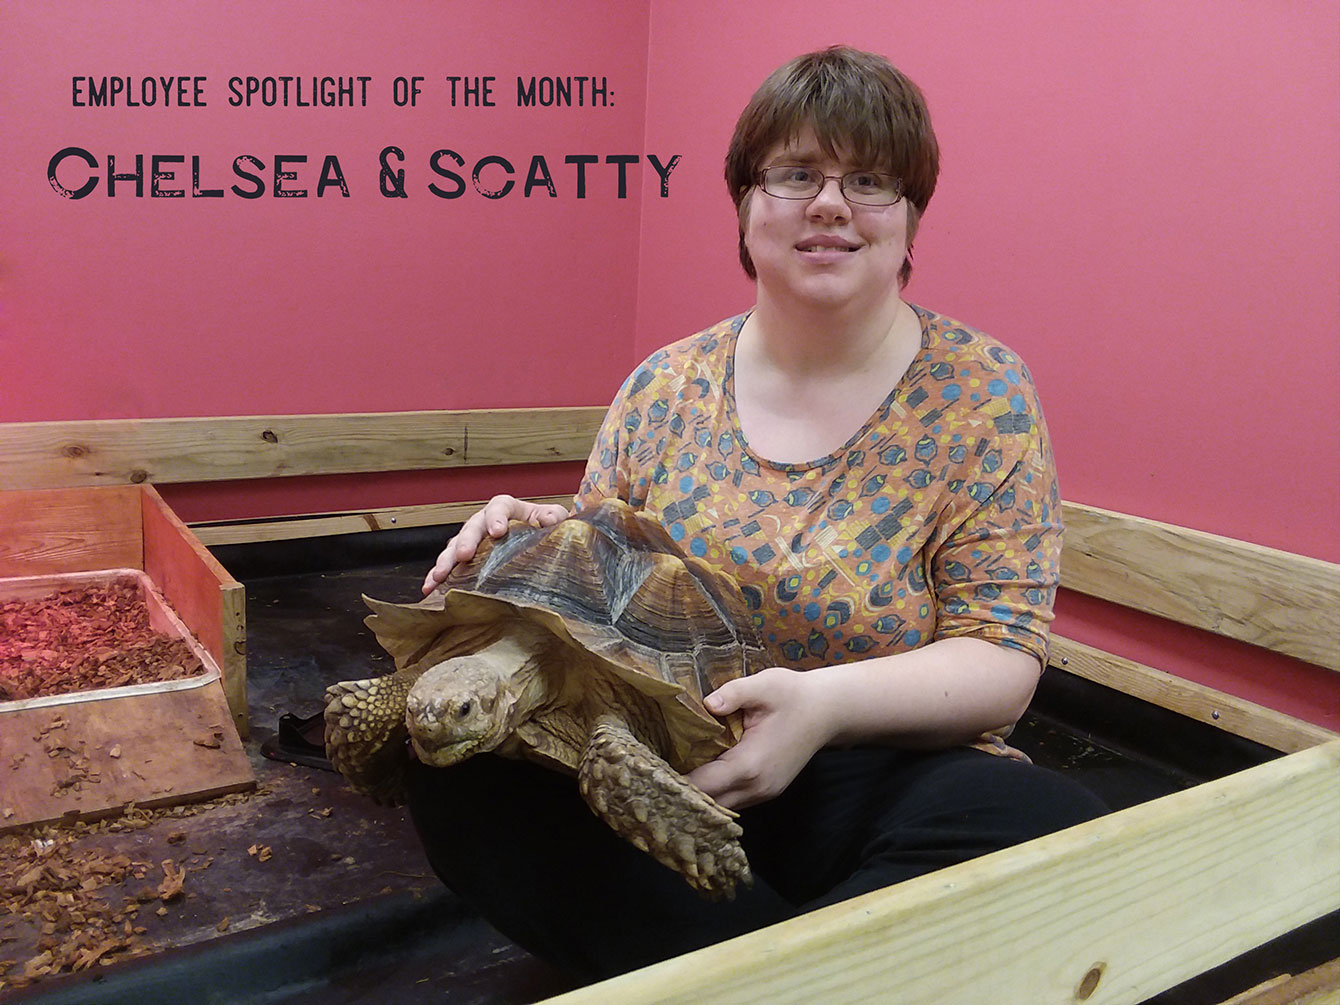 Chelsea Moritz with Scatty